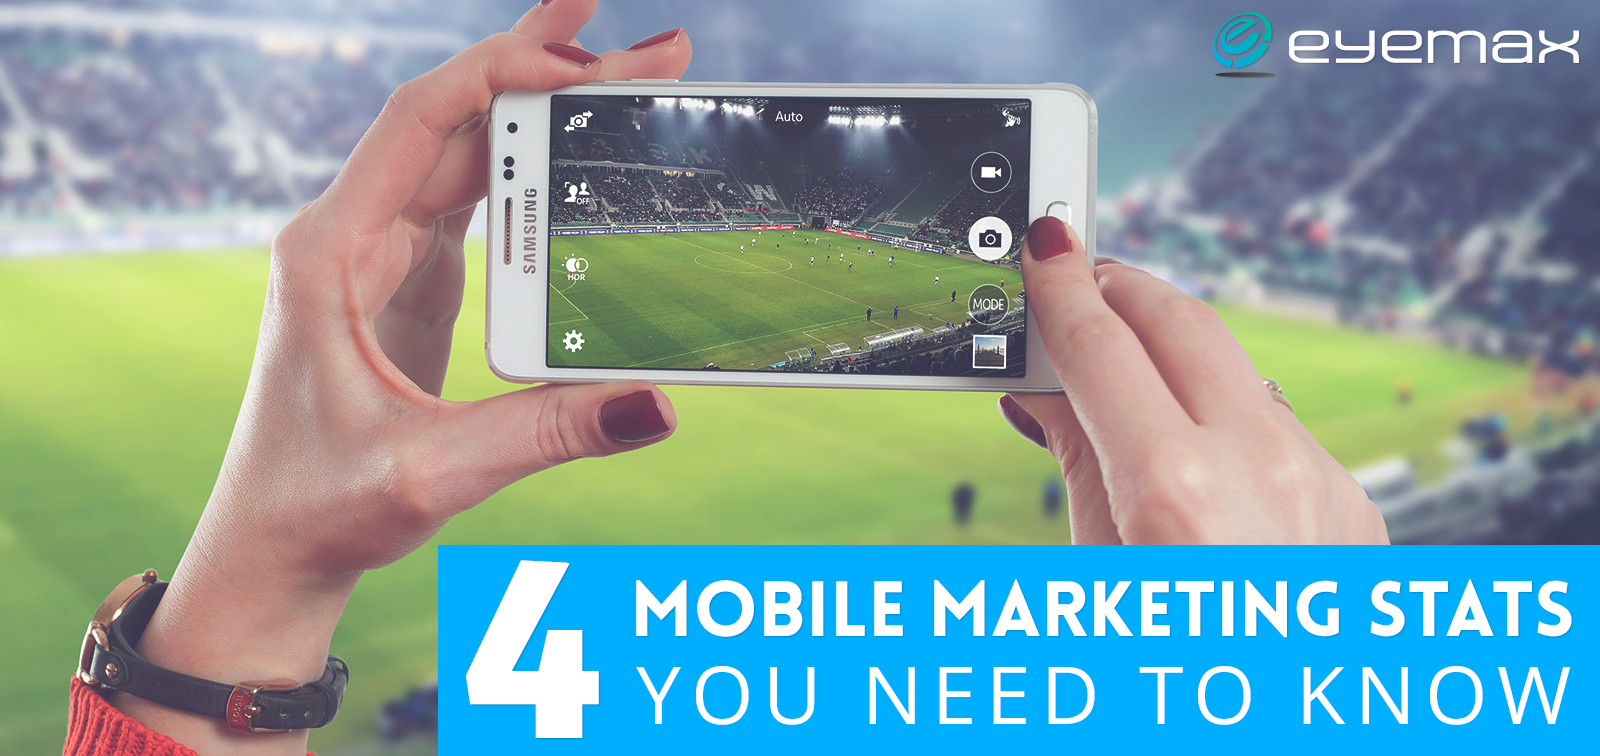 4 Mobile Marketing Stats you Need to Know